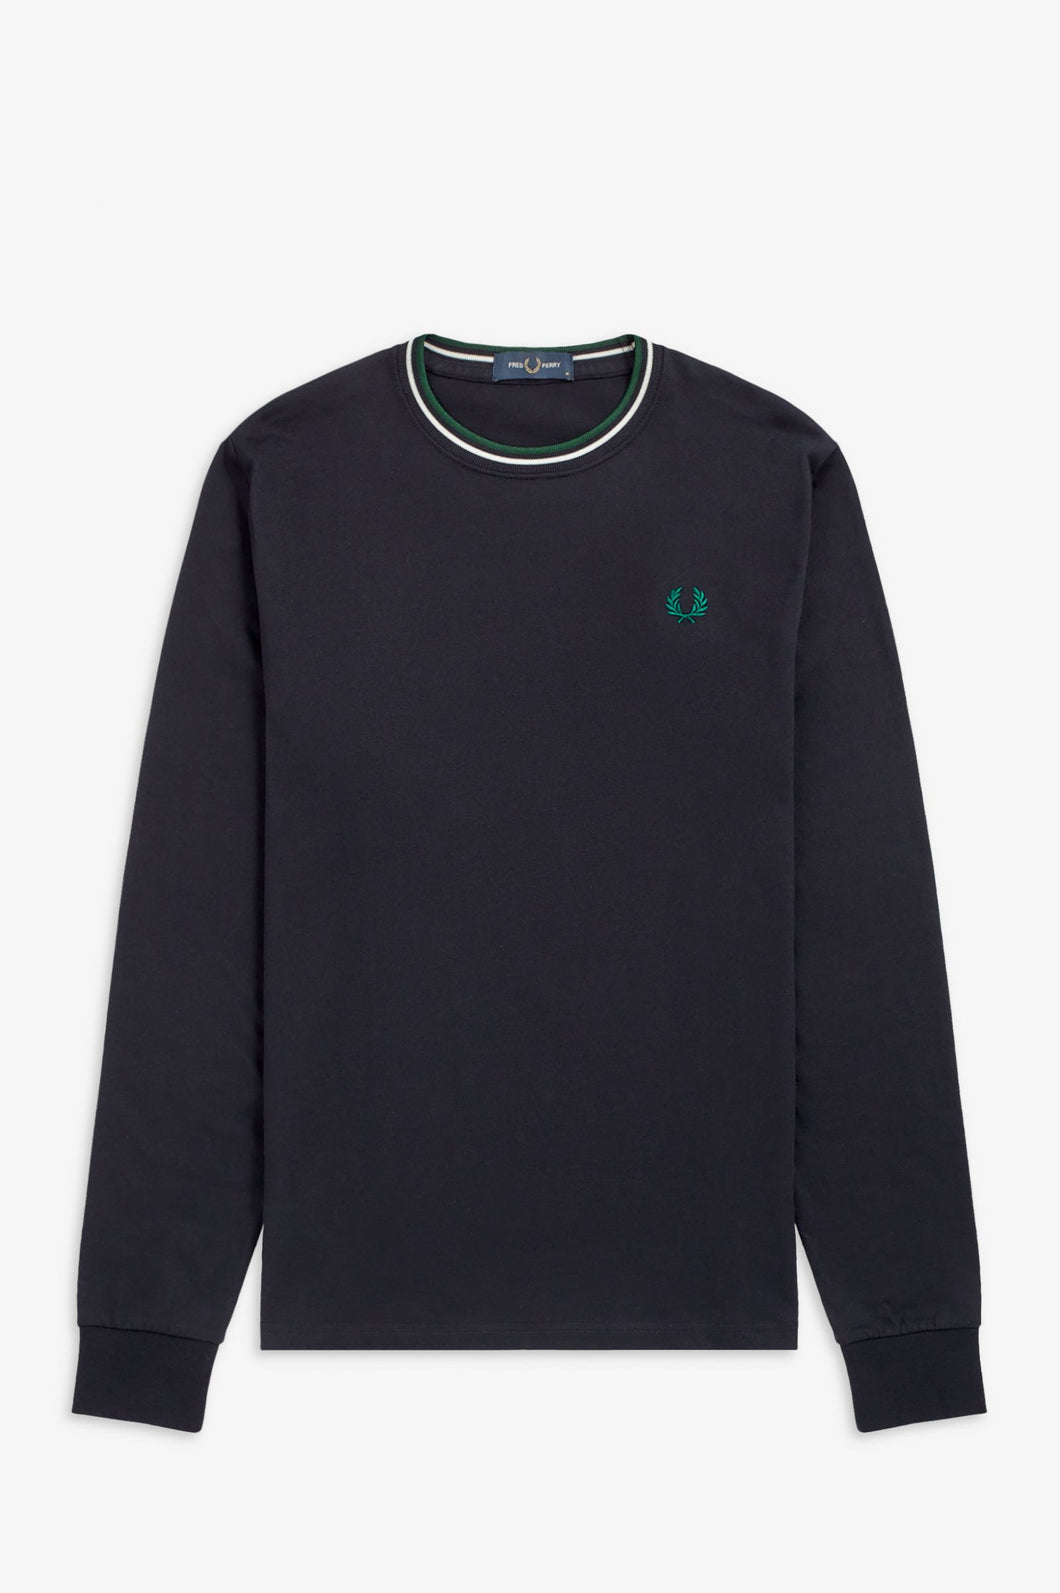 Fred Perry Navy Twin Tipped Long Sleeve T-Shirt - M9602 - 608